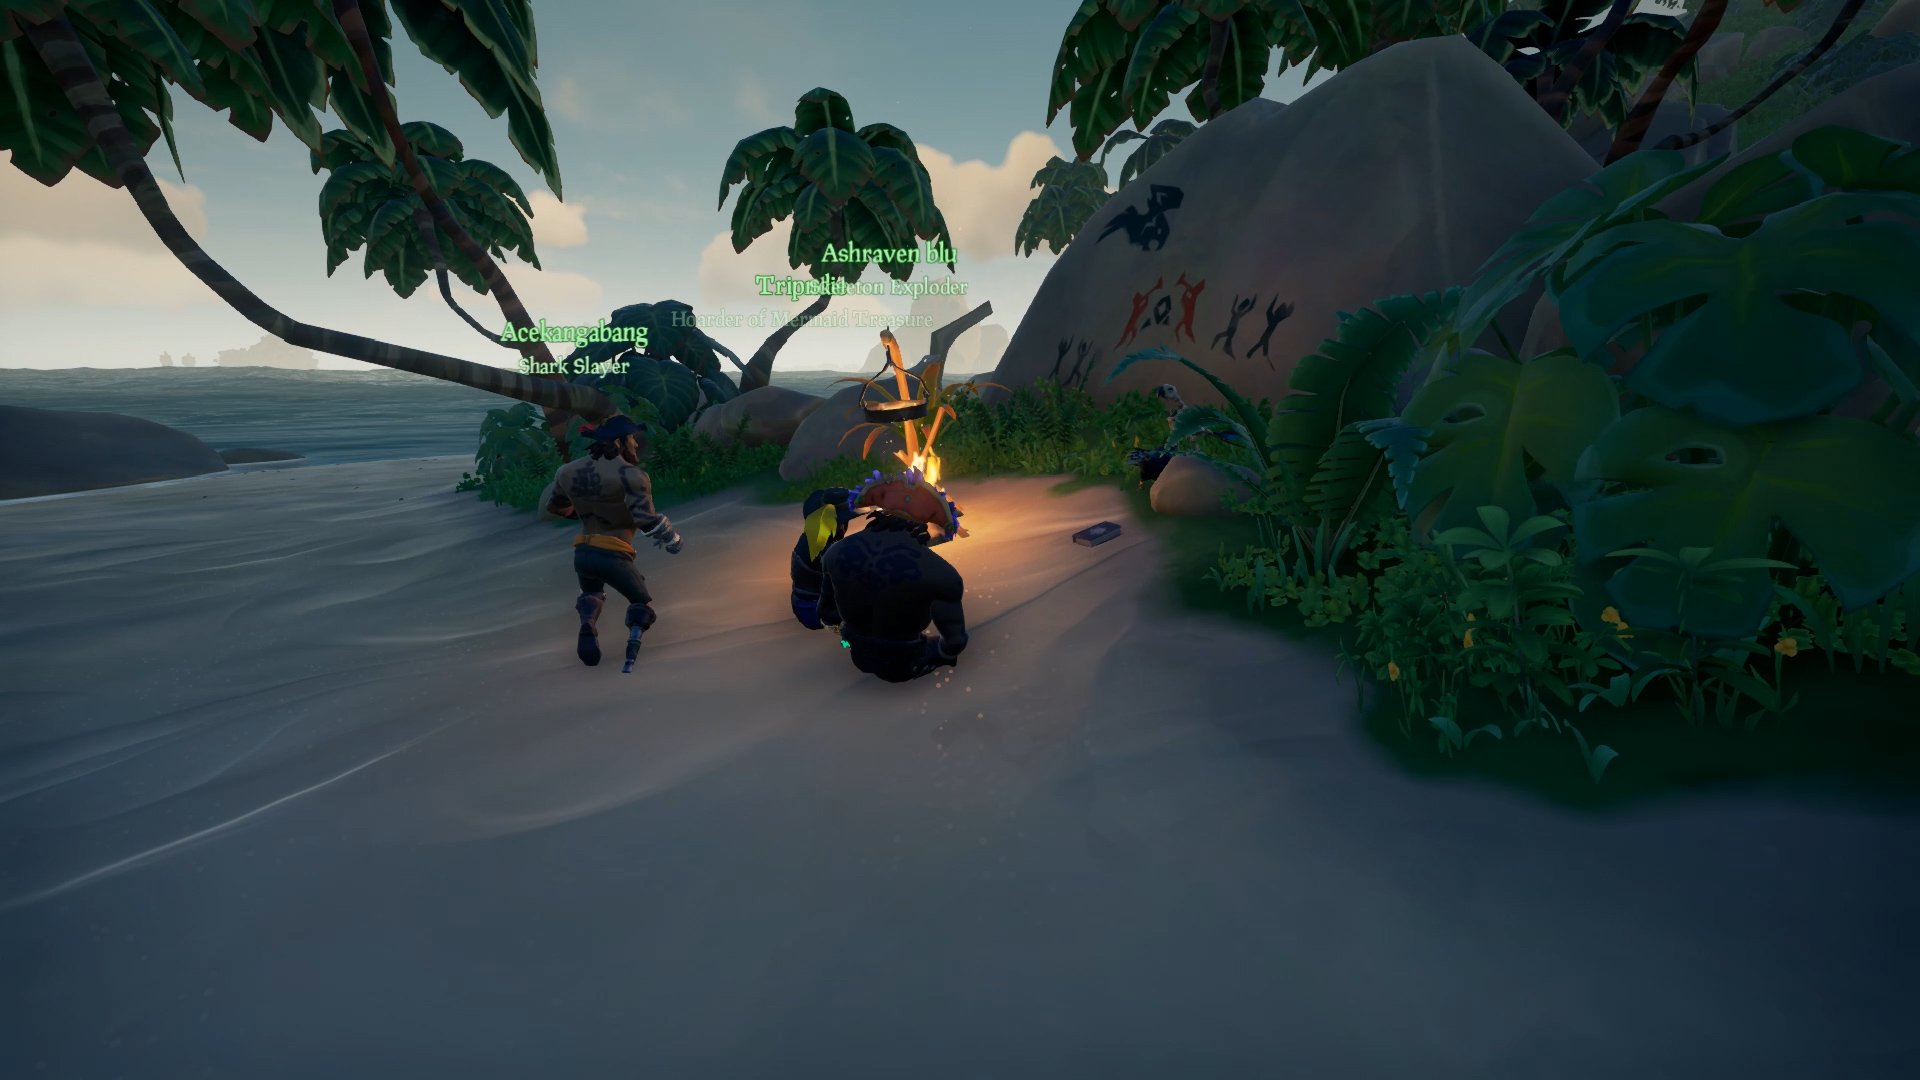 Sea of Thieves Salty location